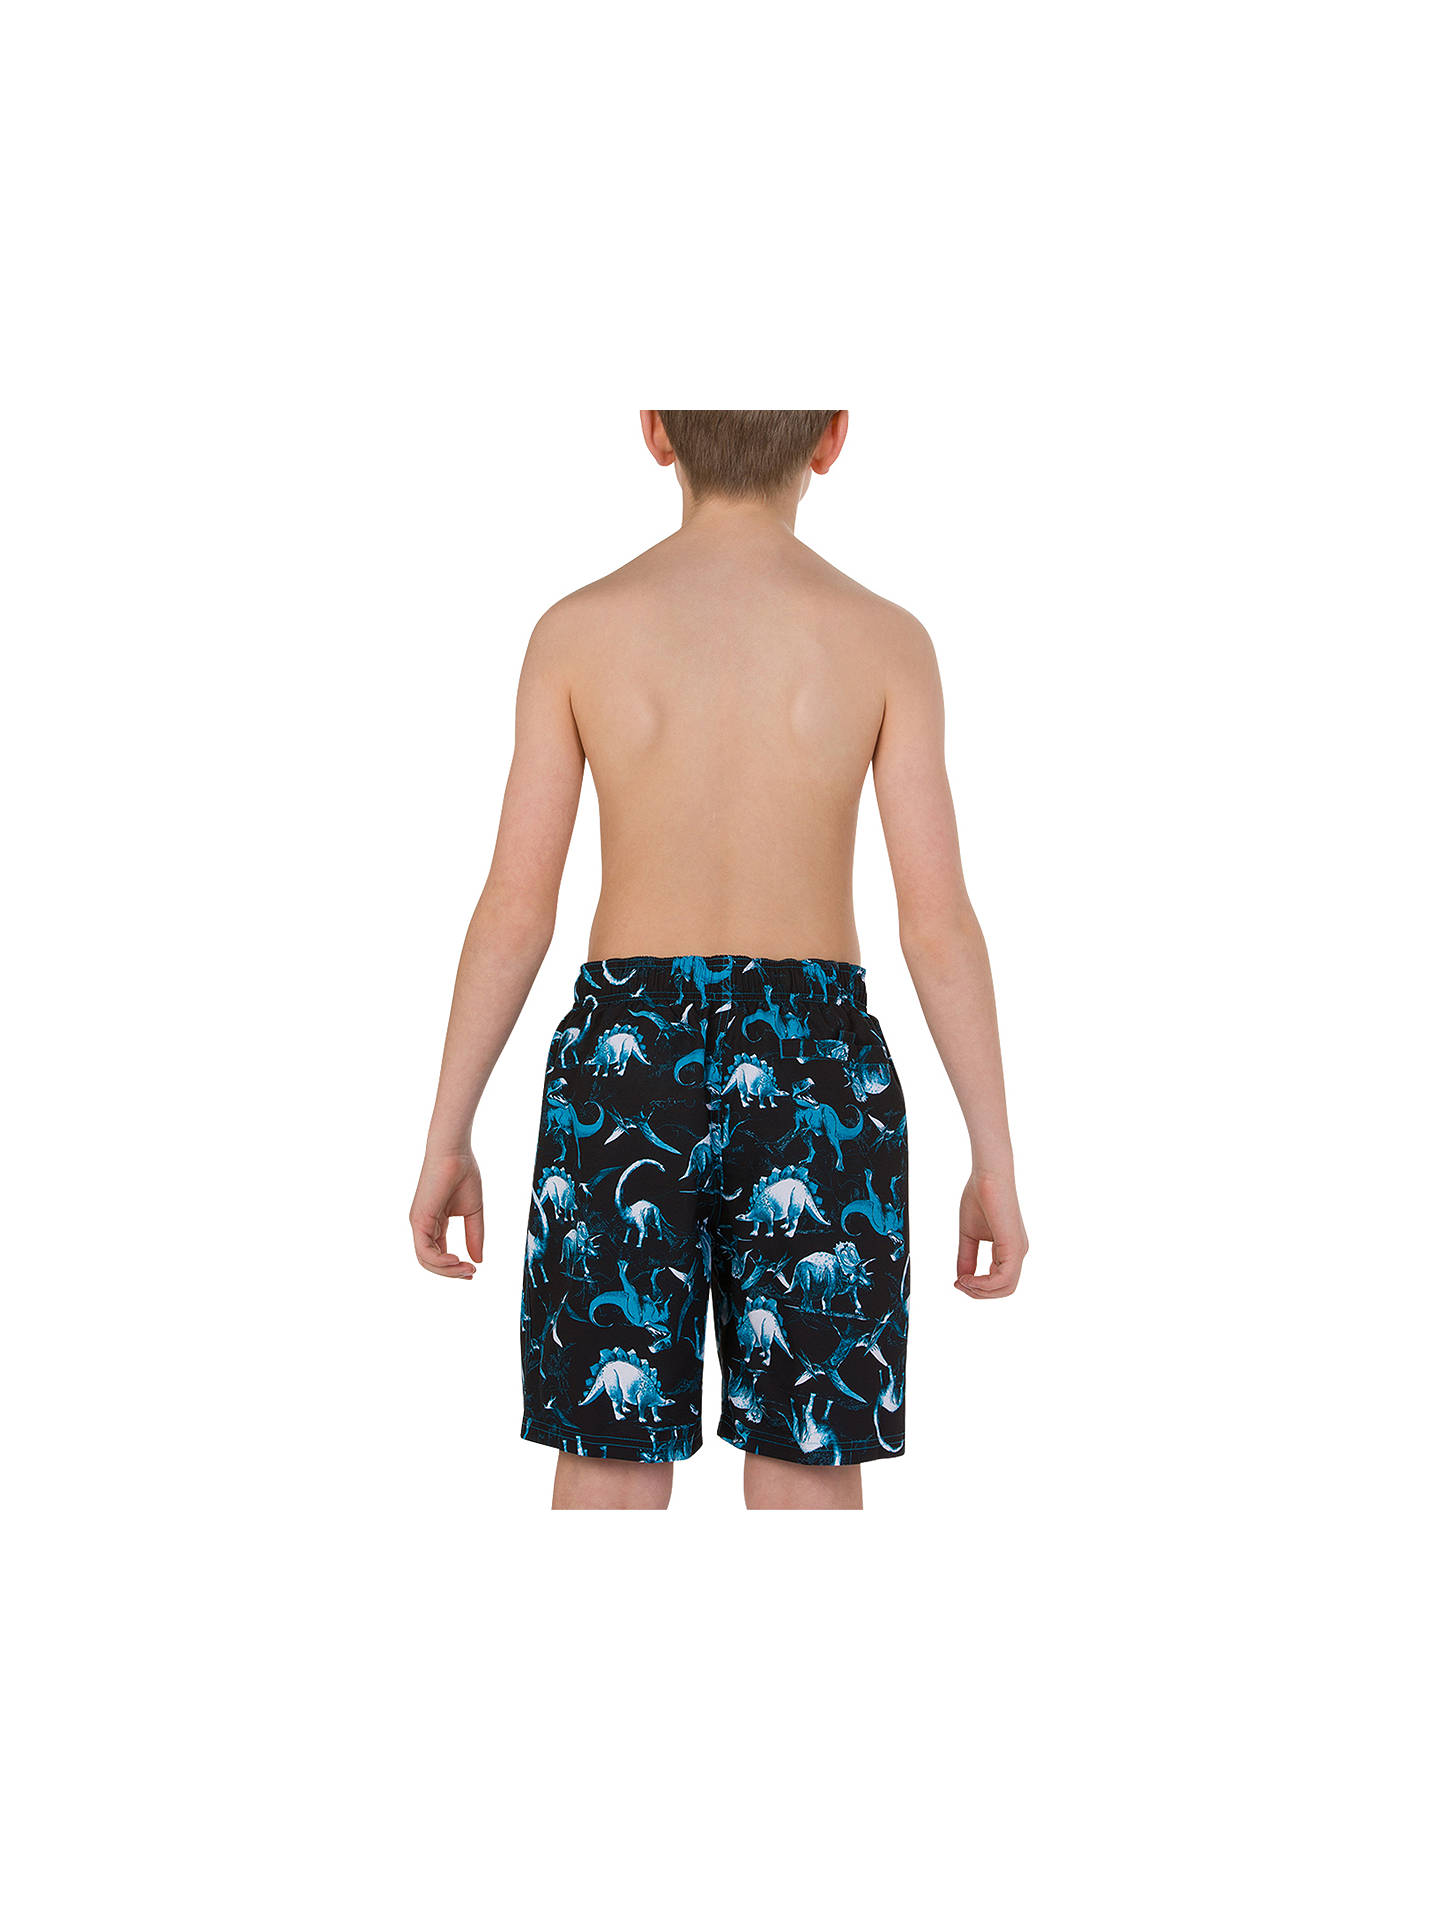 Buy Speedo Boys' Dinosaur Print Leisure Watershorts, Dinotopia Black/Windsor Blue, XS Online at johnlewis.com